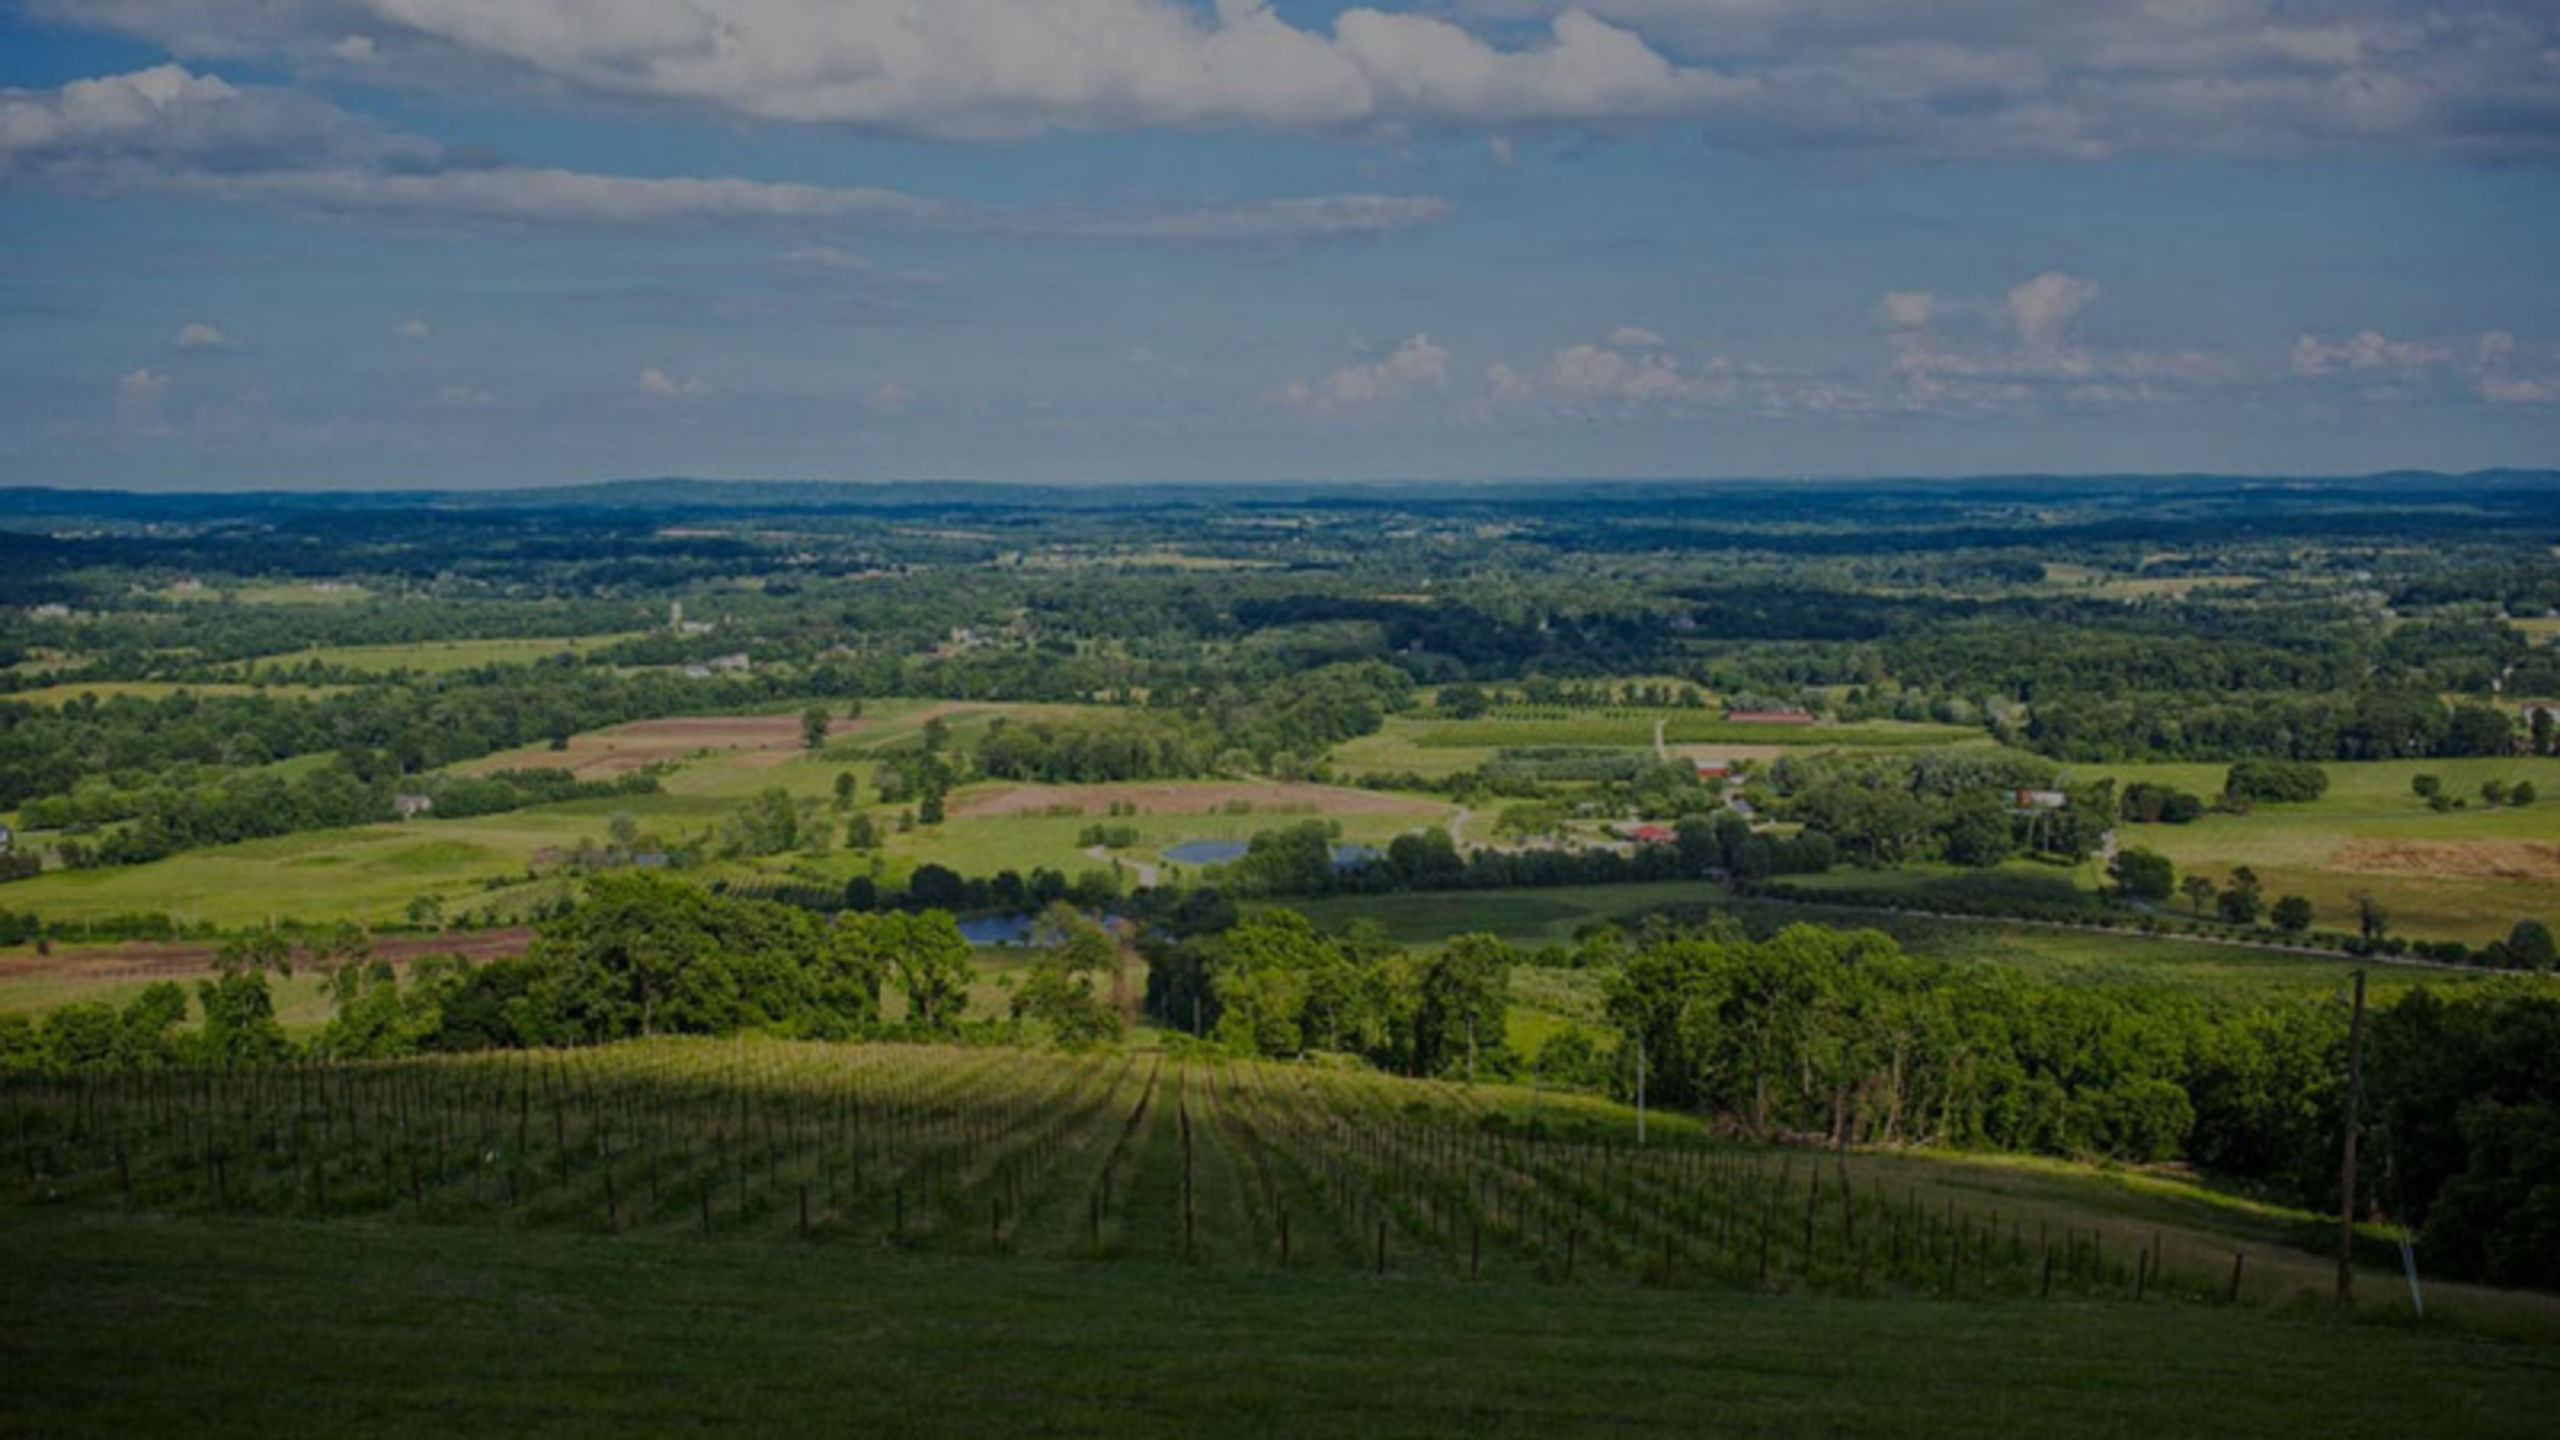 Where Are the Best Views in Loudoun County?